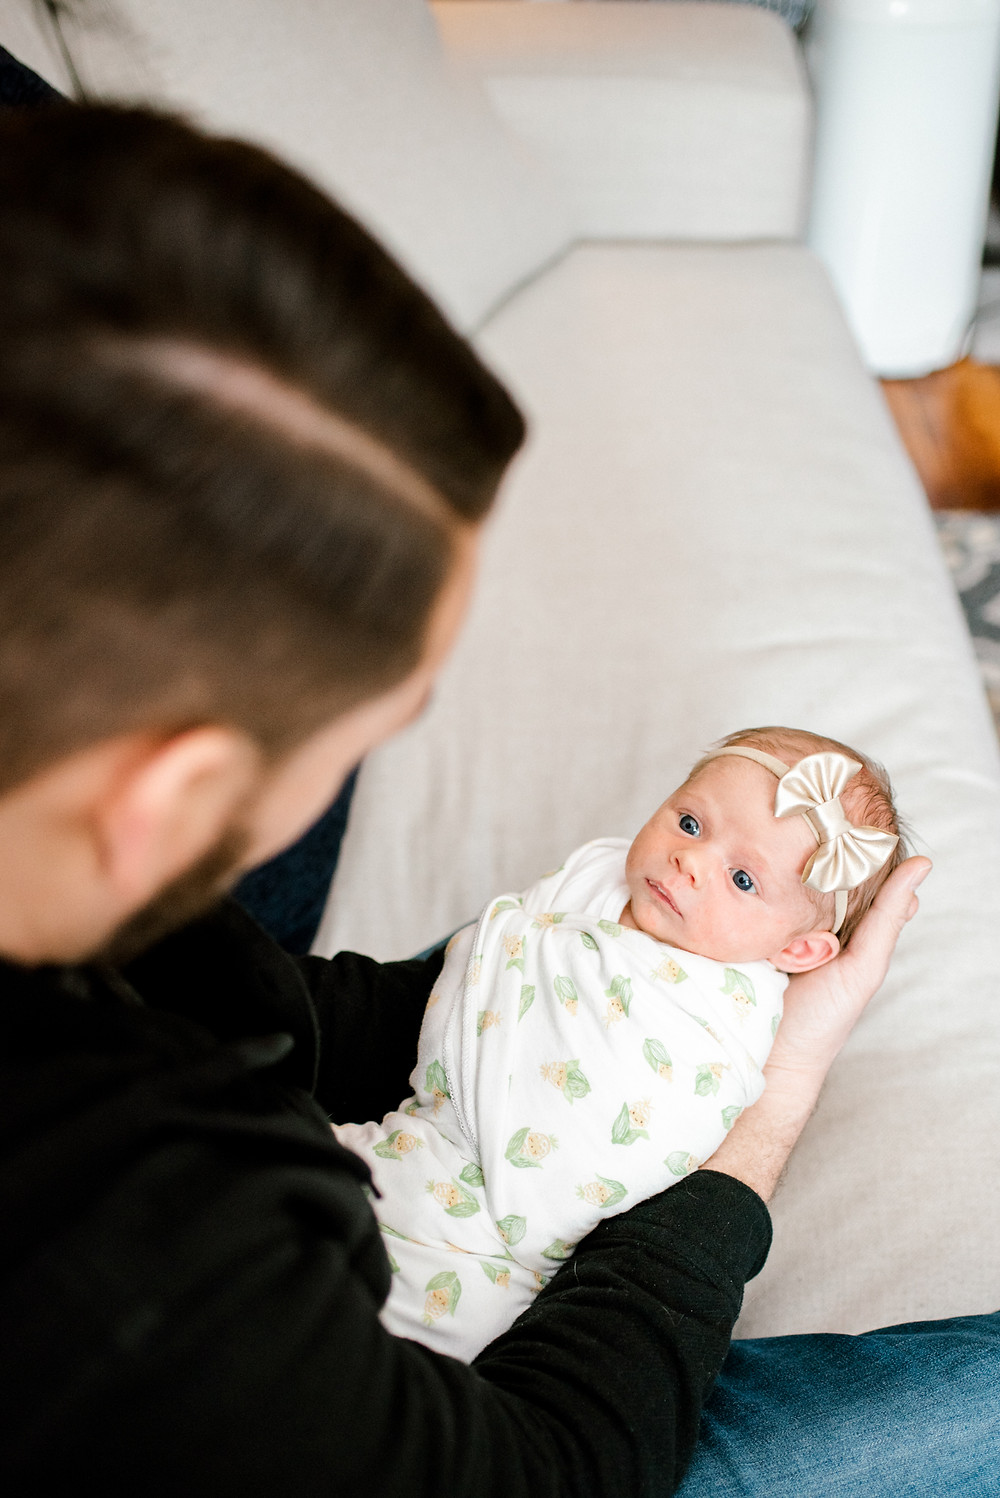 in-home newborn lifestyle photography   ponte vedra, jacksonville, jax, nocatee, st augustine, florida   colleen lindhurst photography